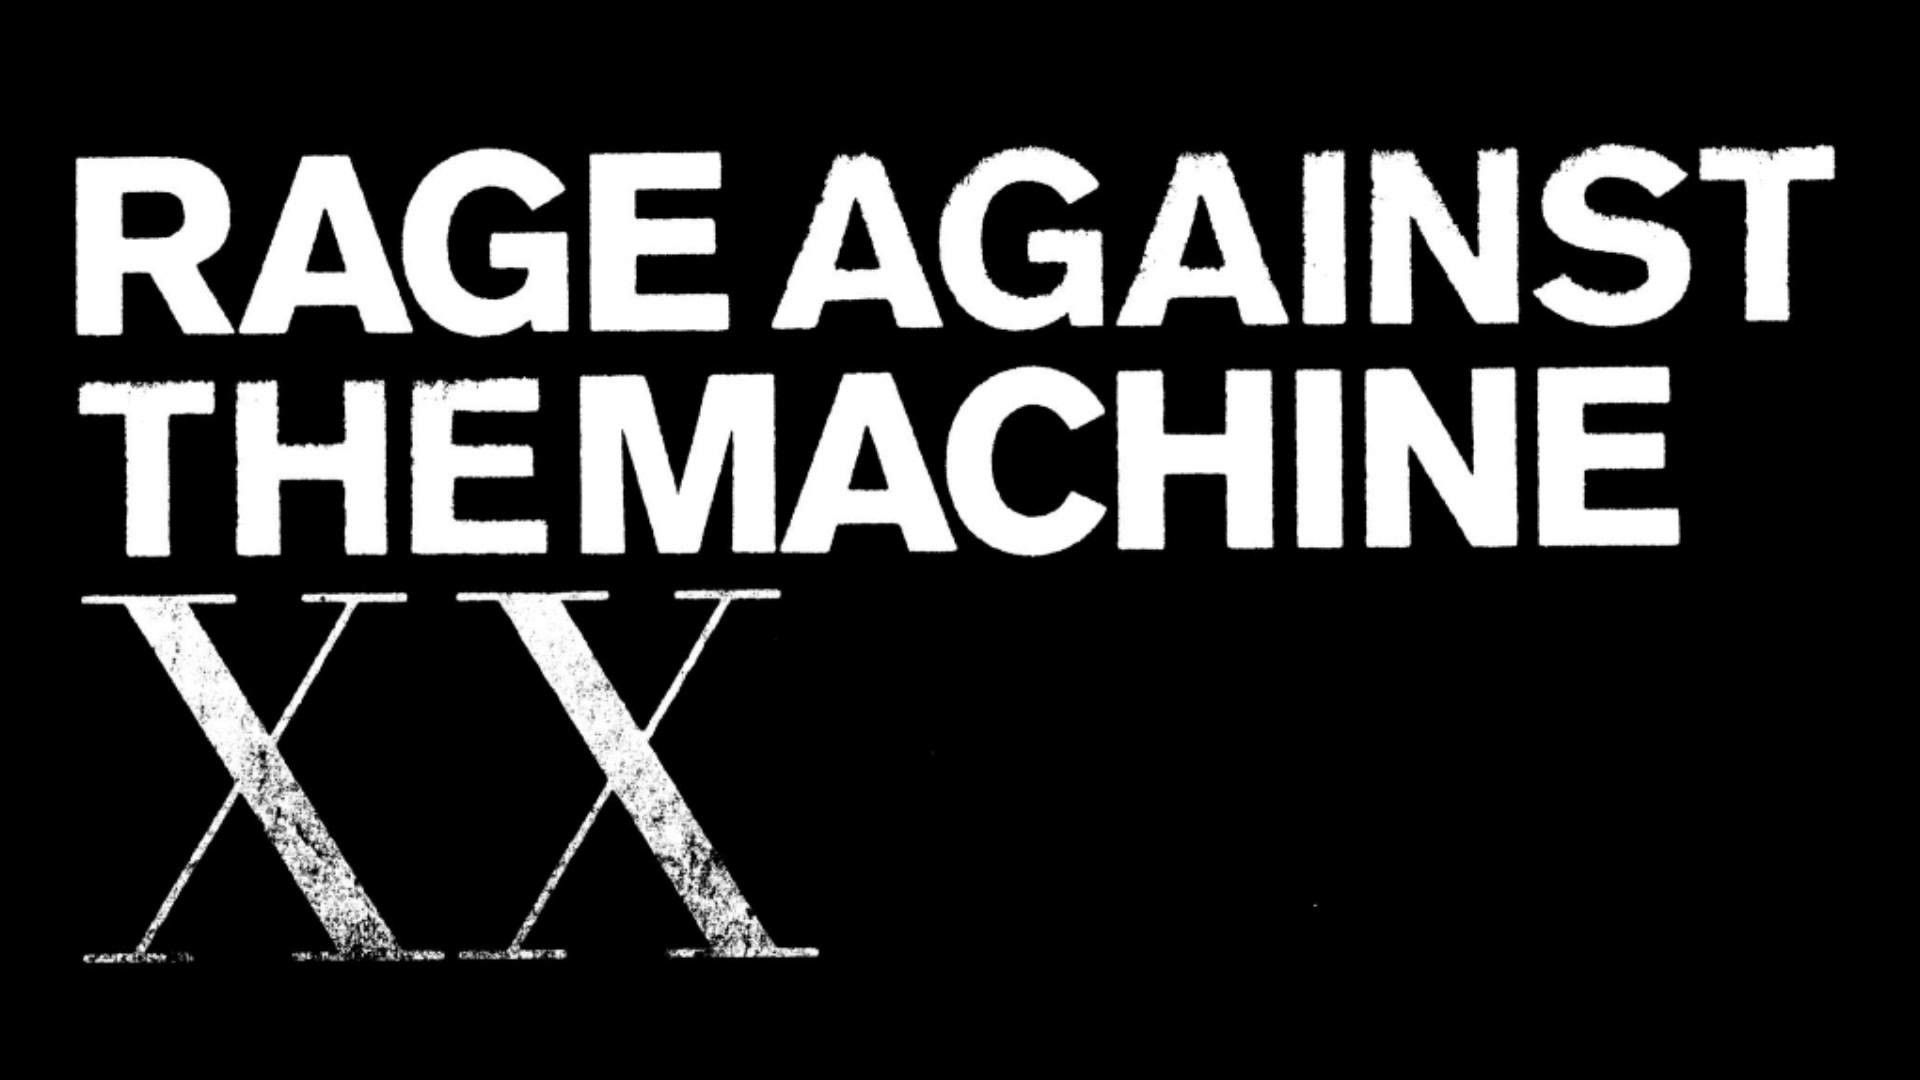 1920x1080 'Auto Logic' Demo (Exclusive From 1991) - Original 1080p HD - RAGE AGAINST  THE MACHINE XX - YouTube